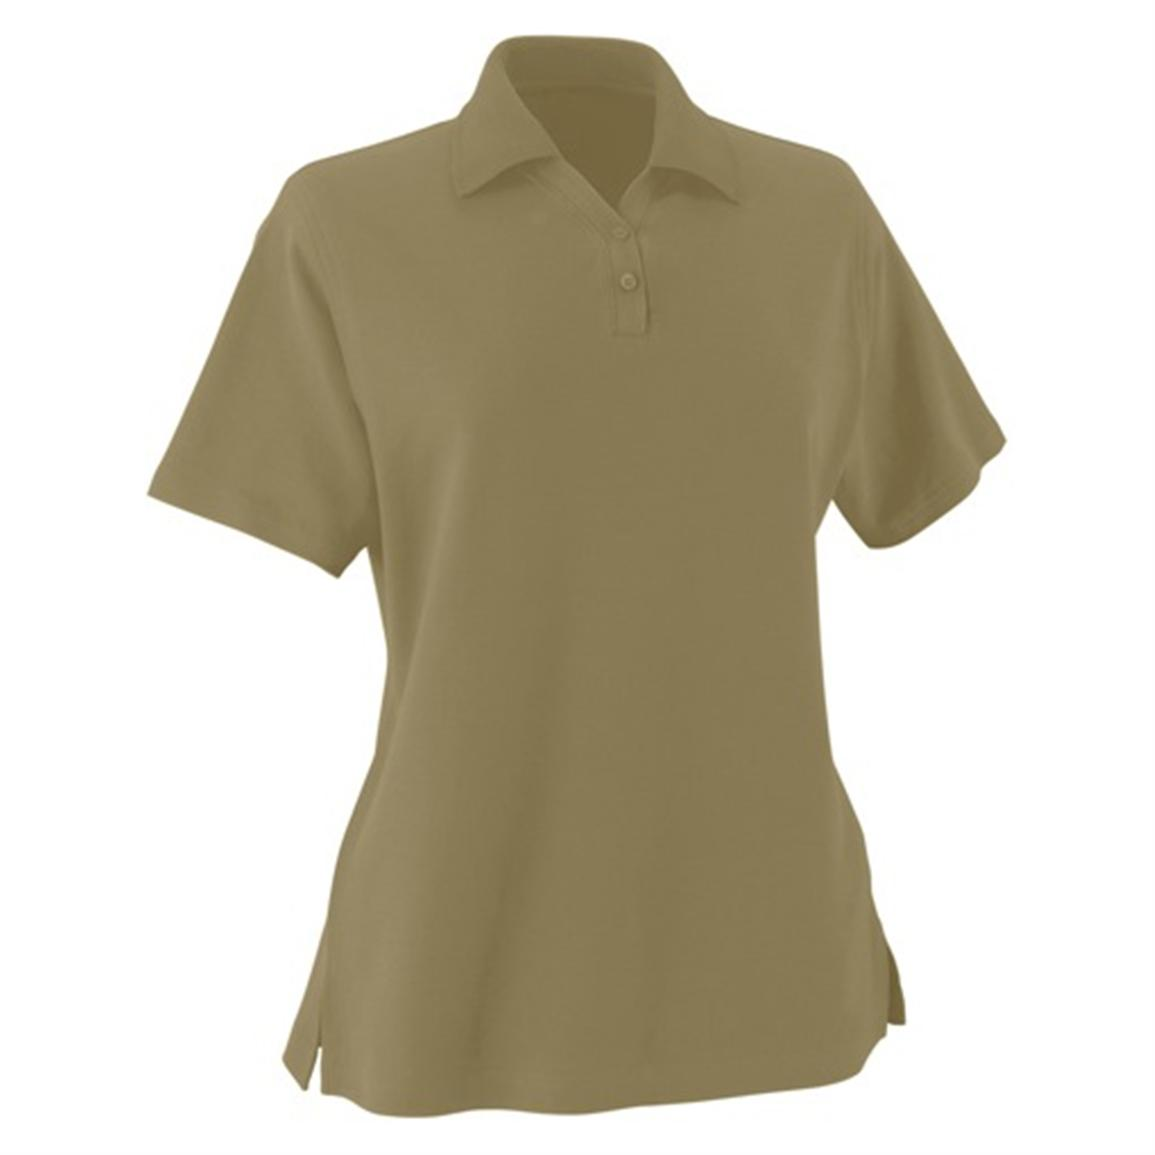 Women's Essential Ringspun Pique Polo from Jockey®, Sage